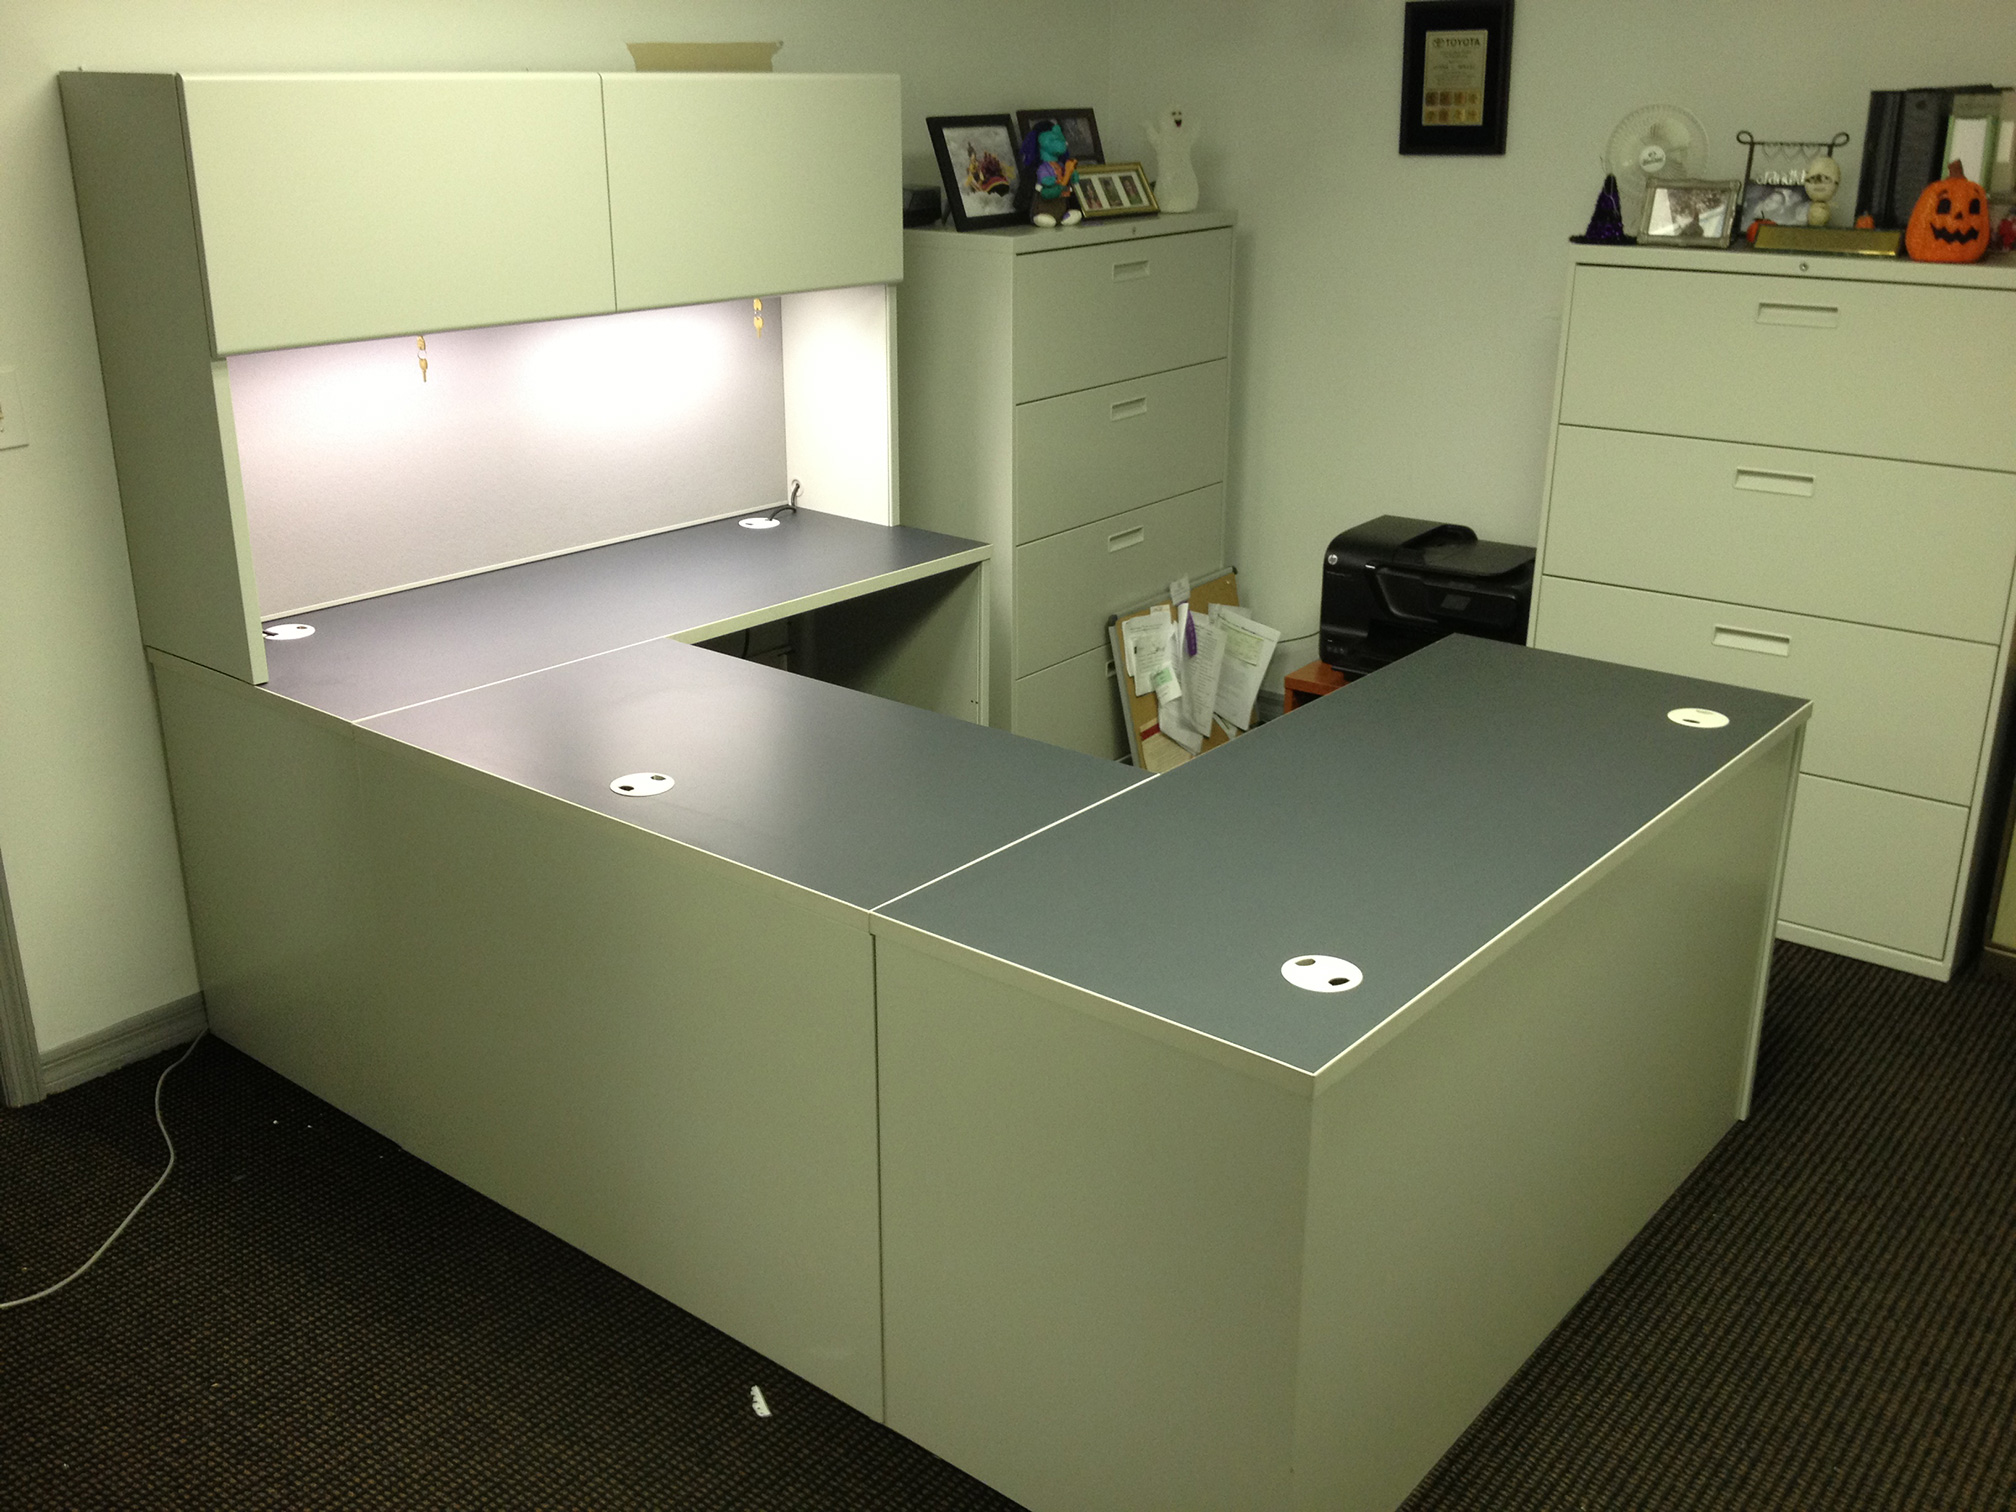 cubicle-doors-manasota-office-supplies-llc.jpg